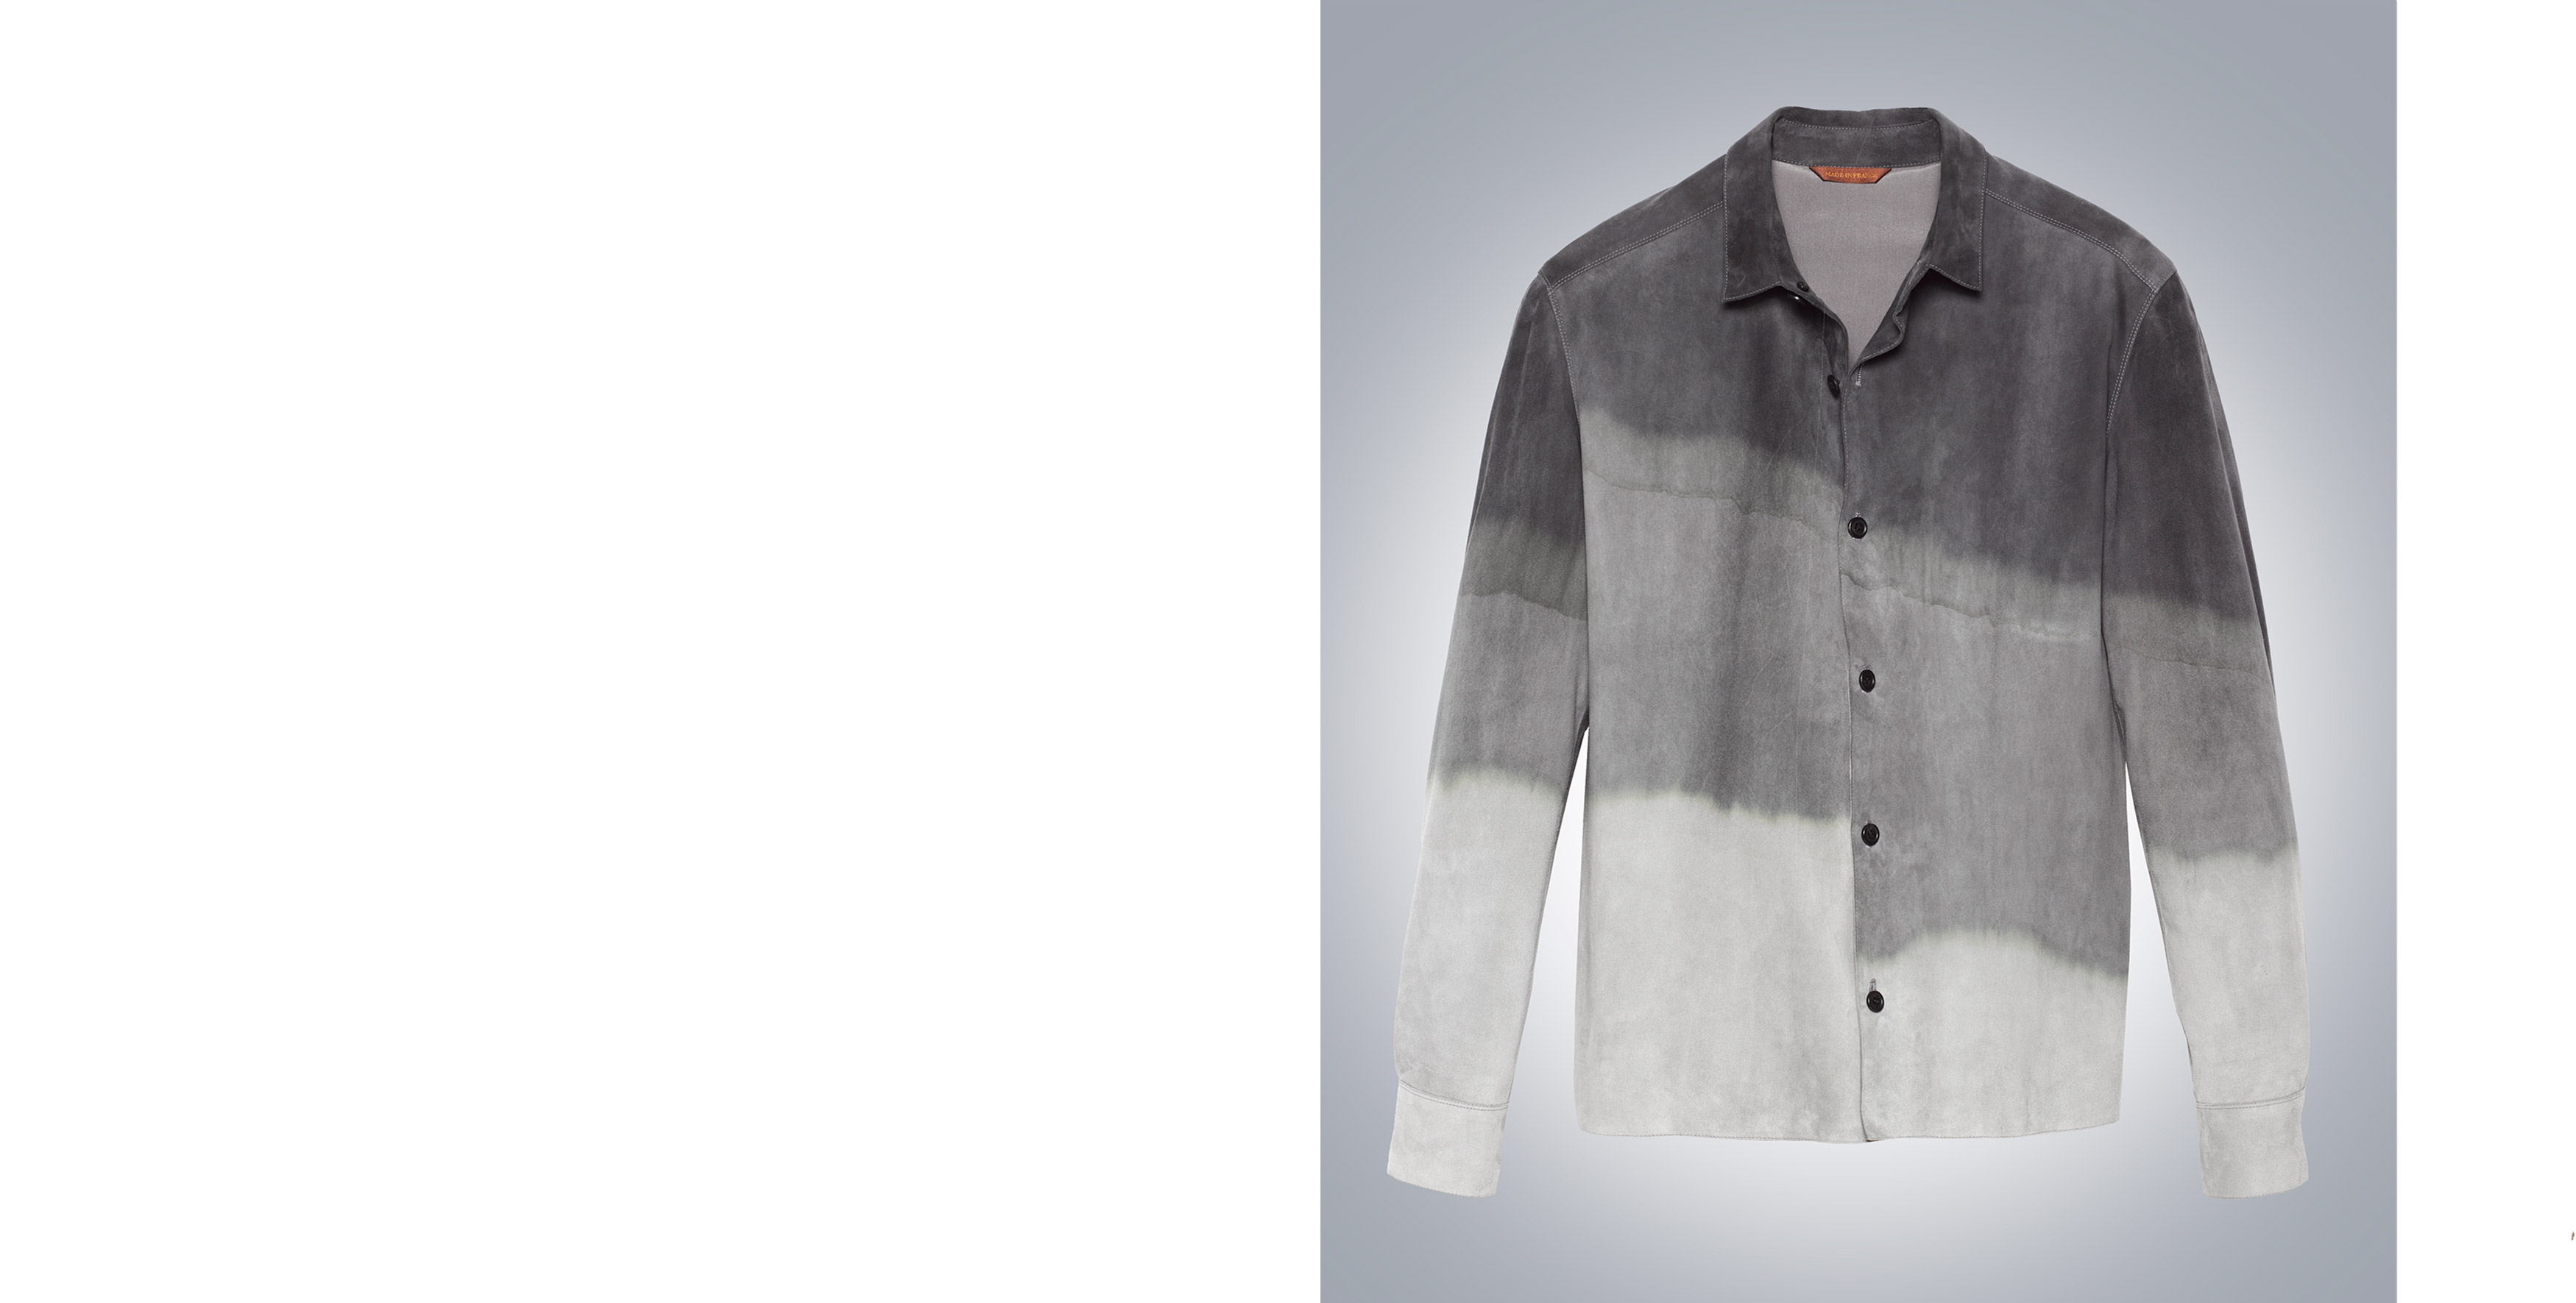 Shirt in tie-dye deer suede and Eider down lining